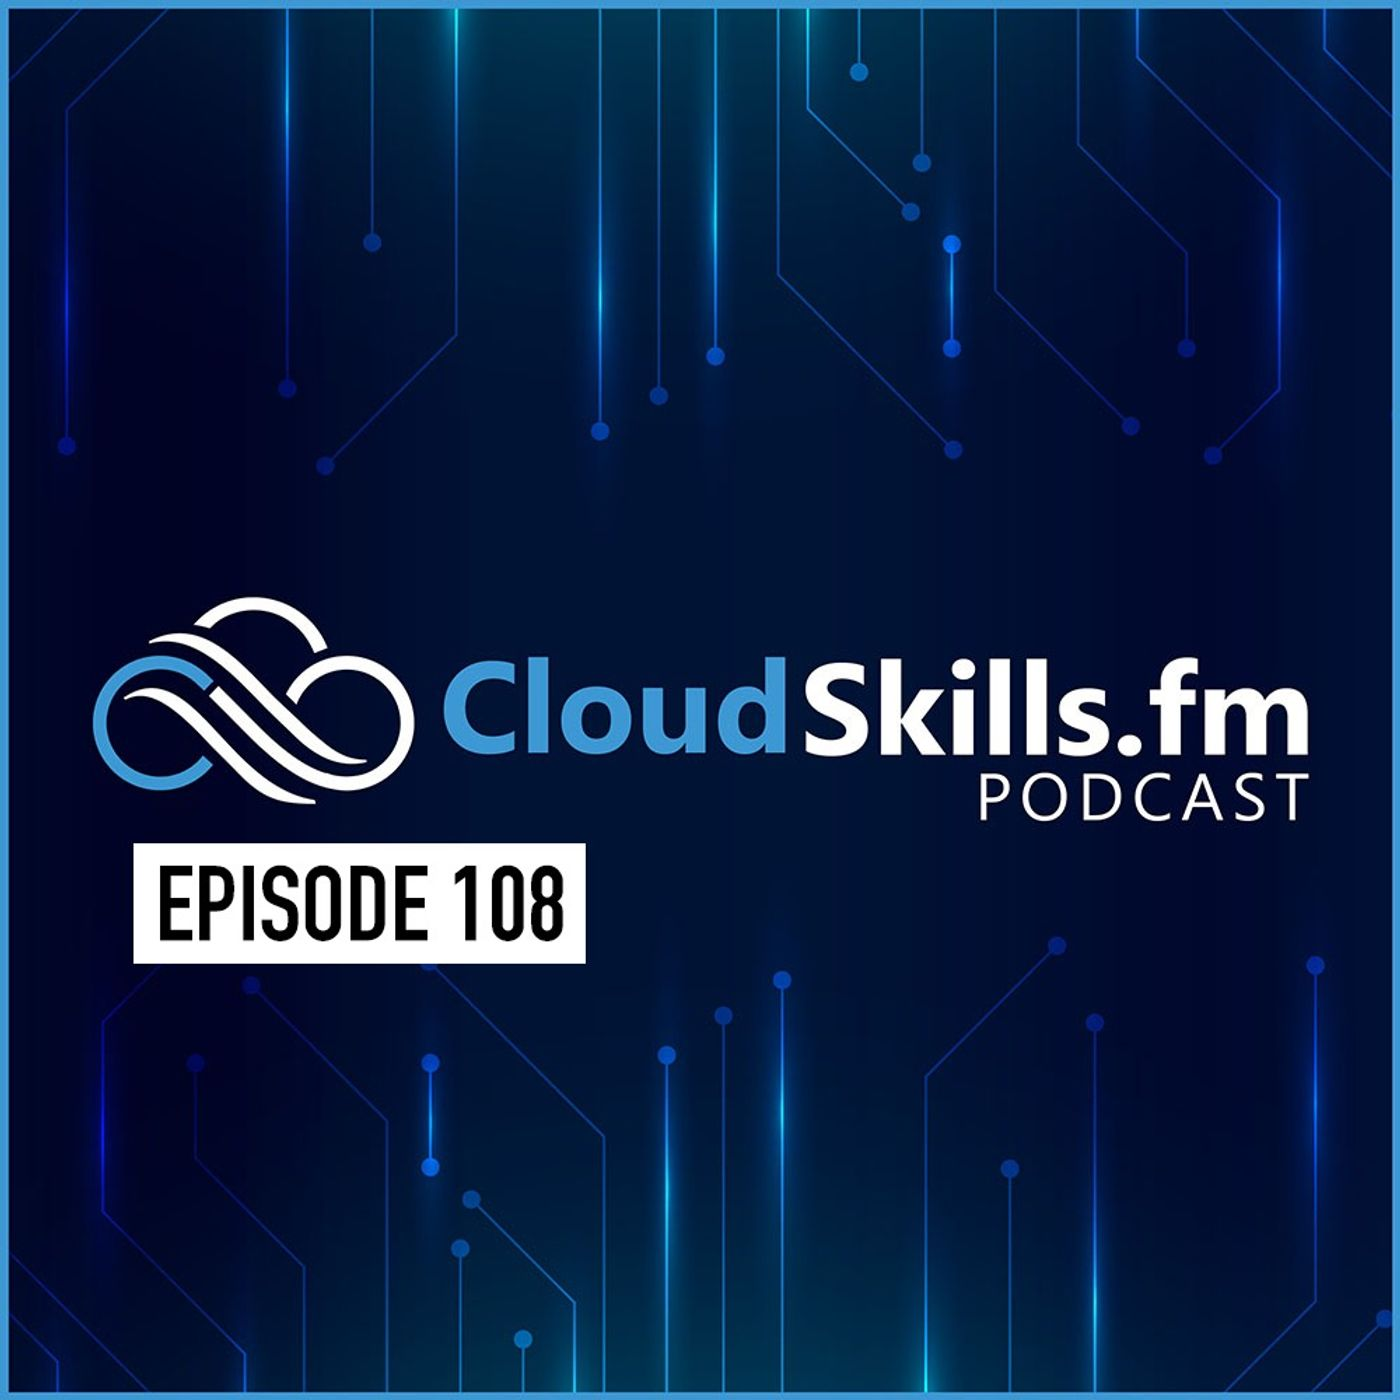 108: Cyber Security and Career Progression with Chris Ray and Jake Rajnovich